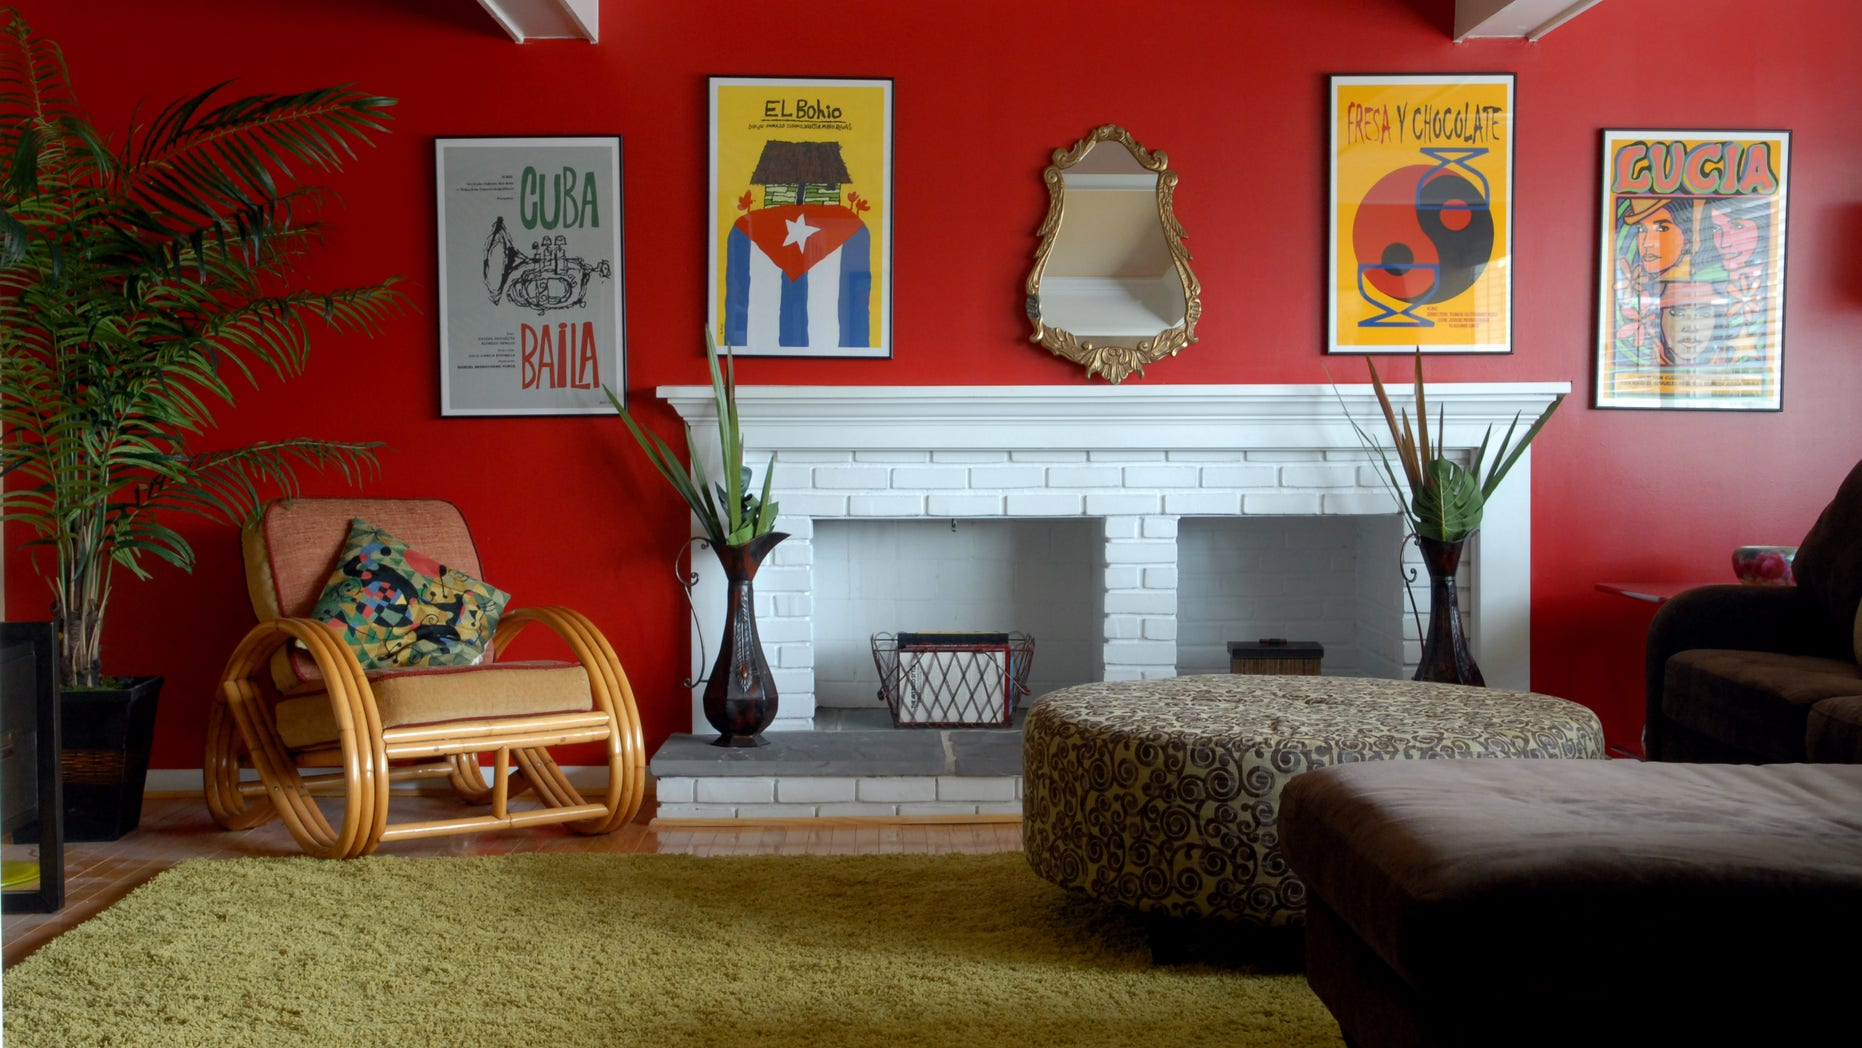 The red walls in this home were inspired by the homeowner's art from Cuba.